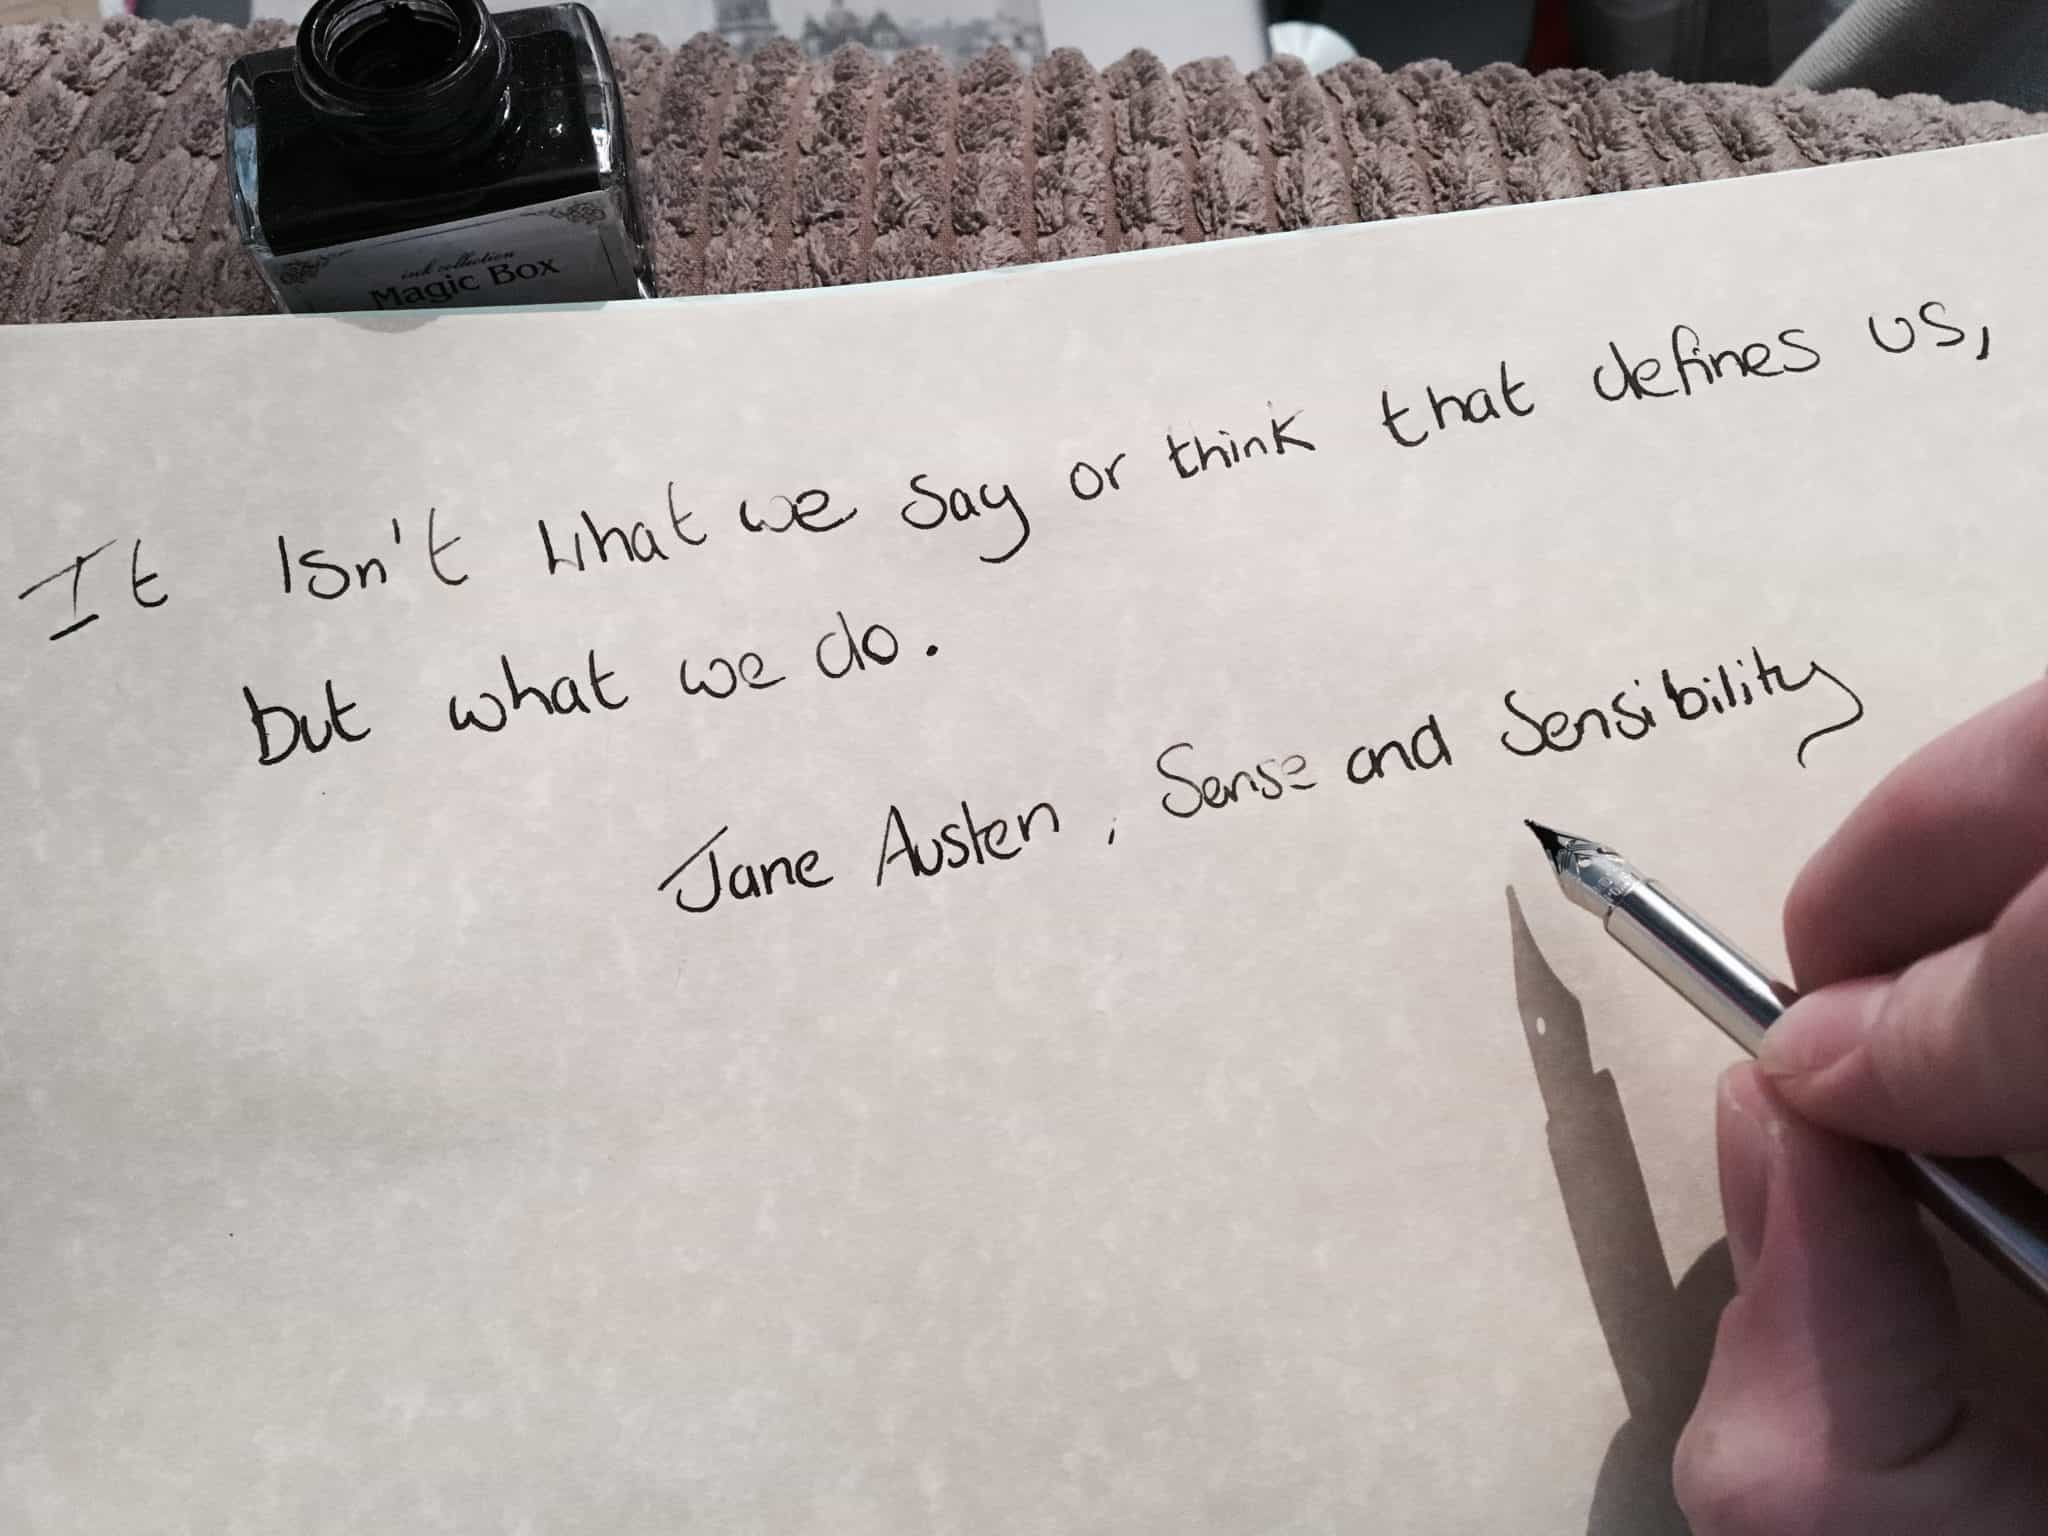 Jane Austen Quote from Sense and sensibility written with a quill and ink